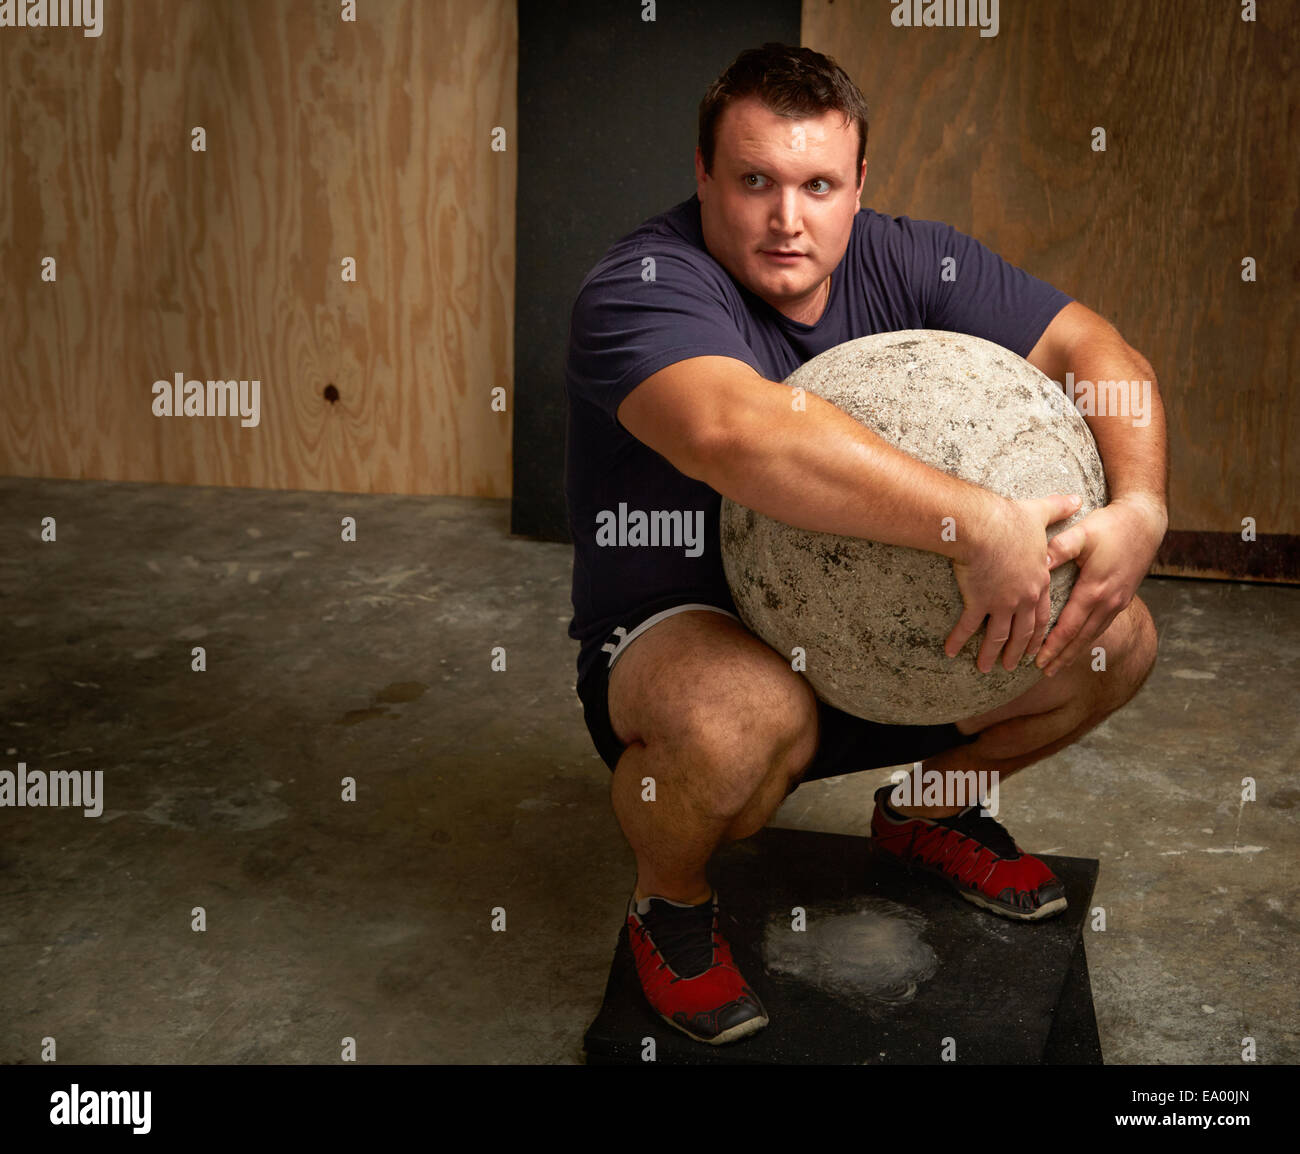 Portrait of young male weightlifter squatting with atlas ball in gym - Stock Image